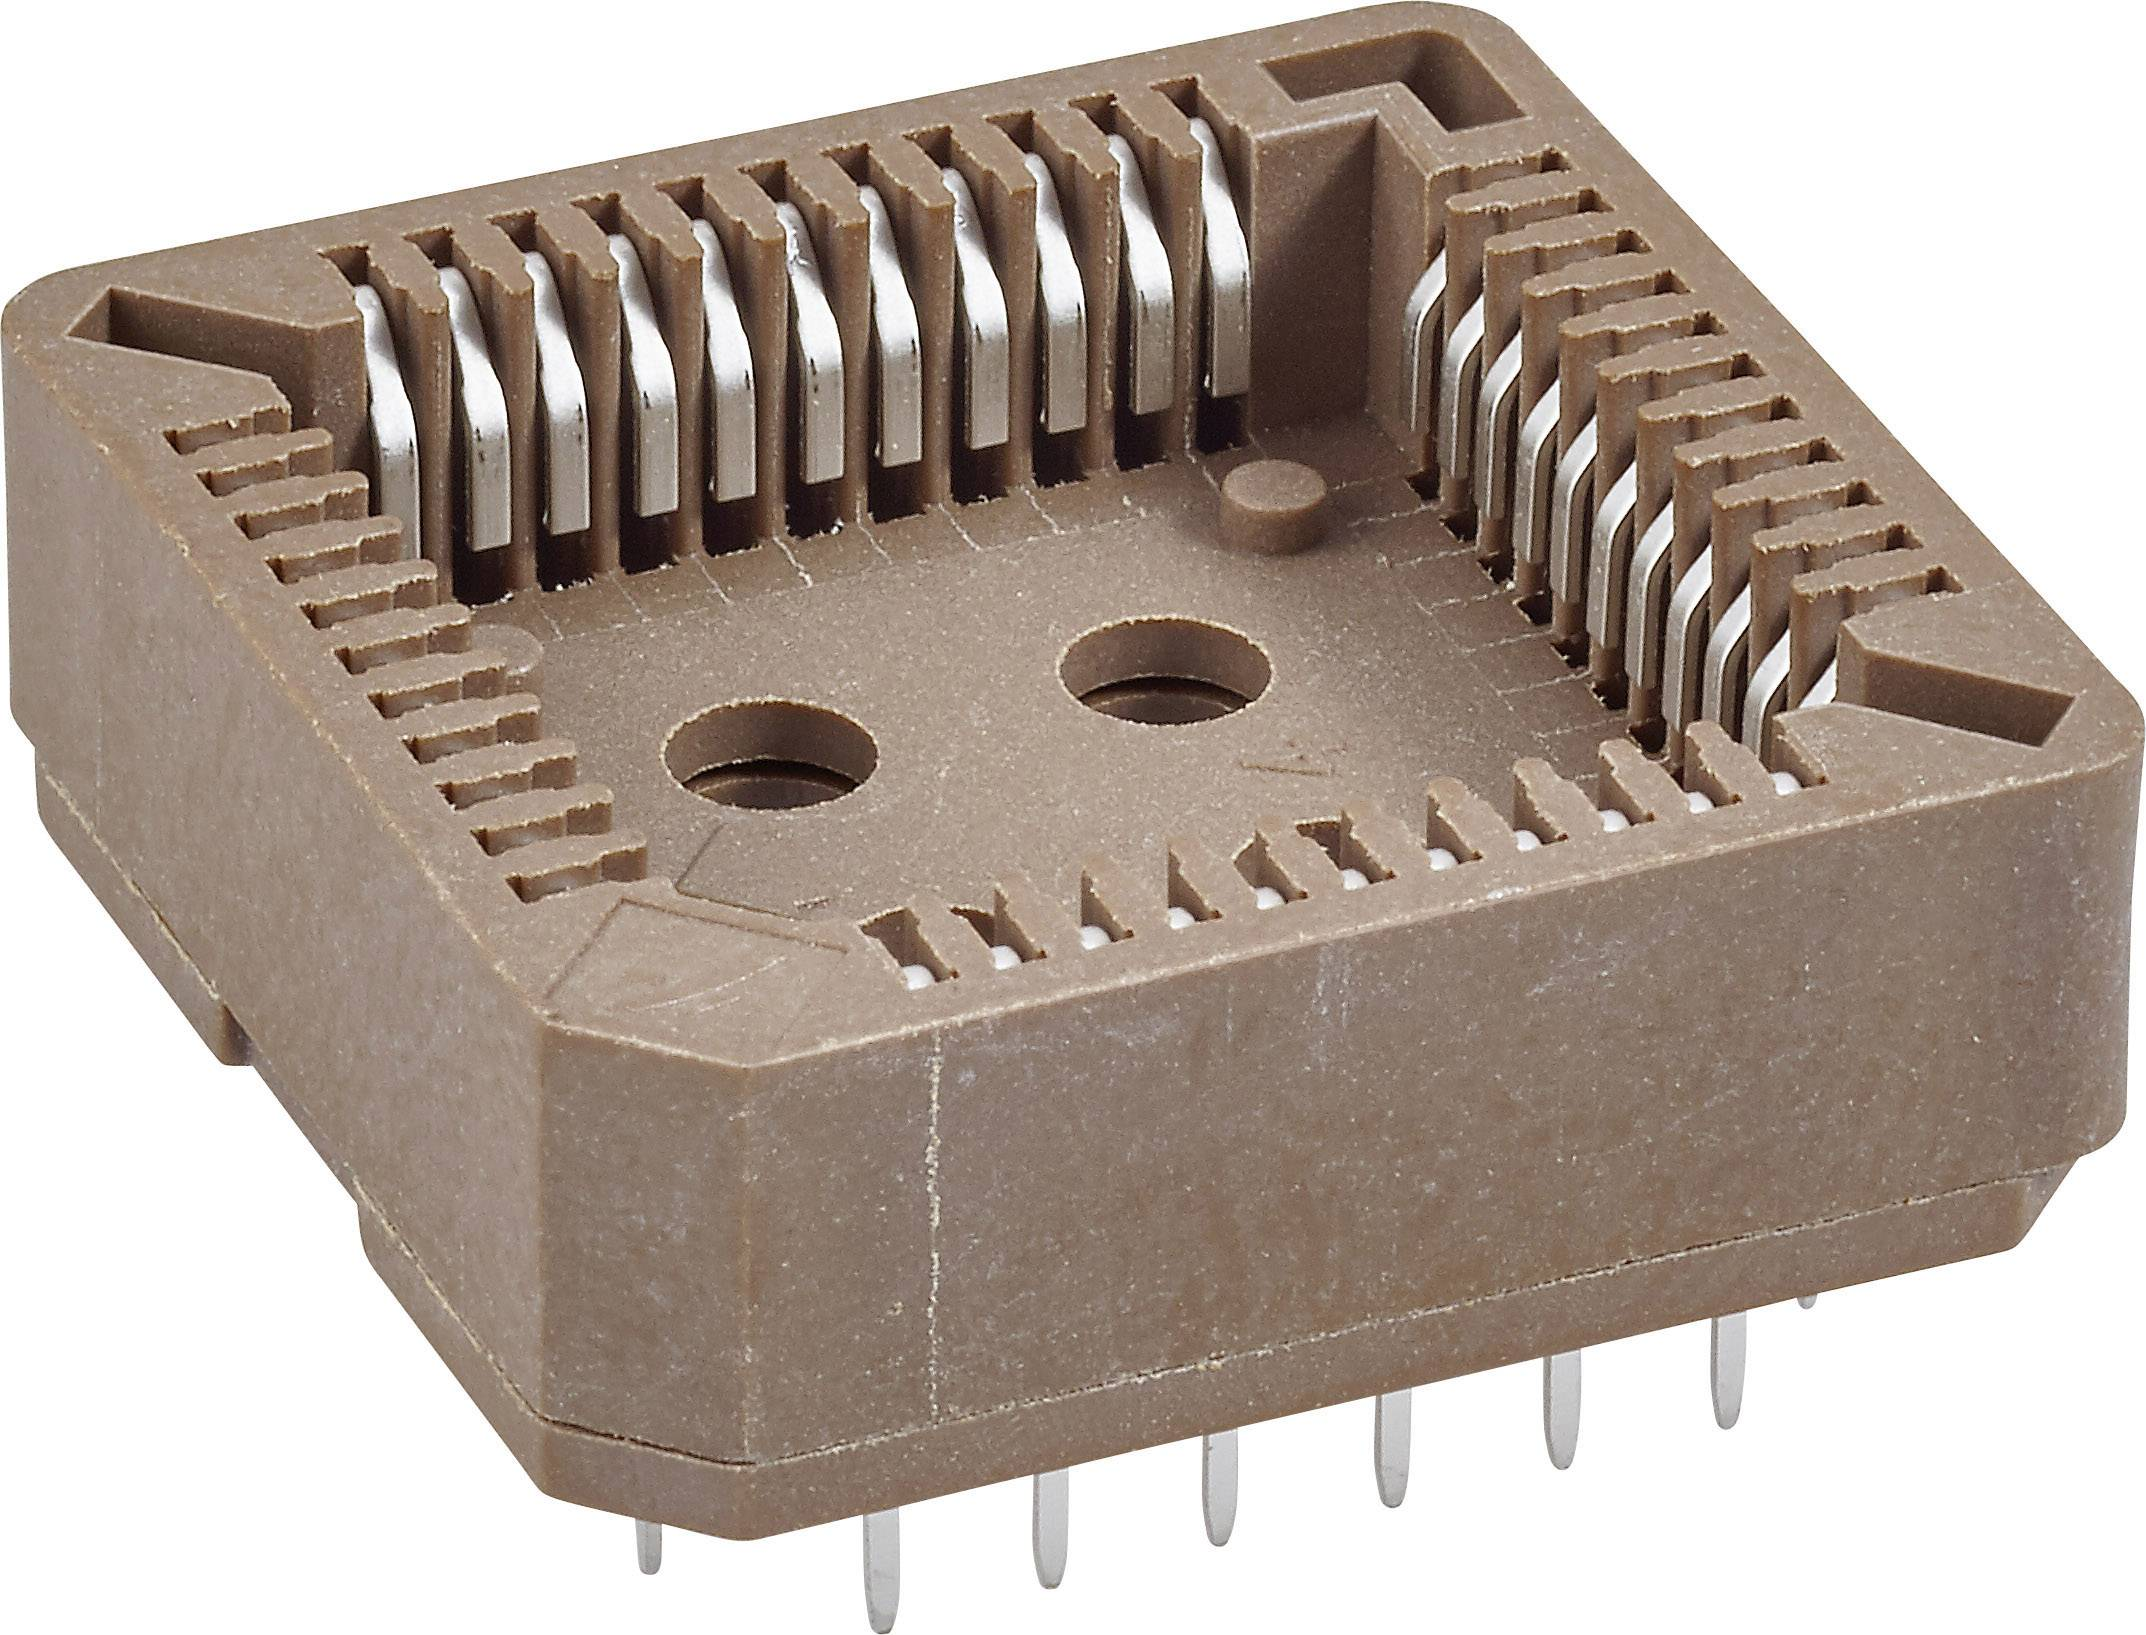 SMD PLCC patice FCI Sockets 1.27 mm, pólů 44, 1 ks